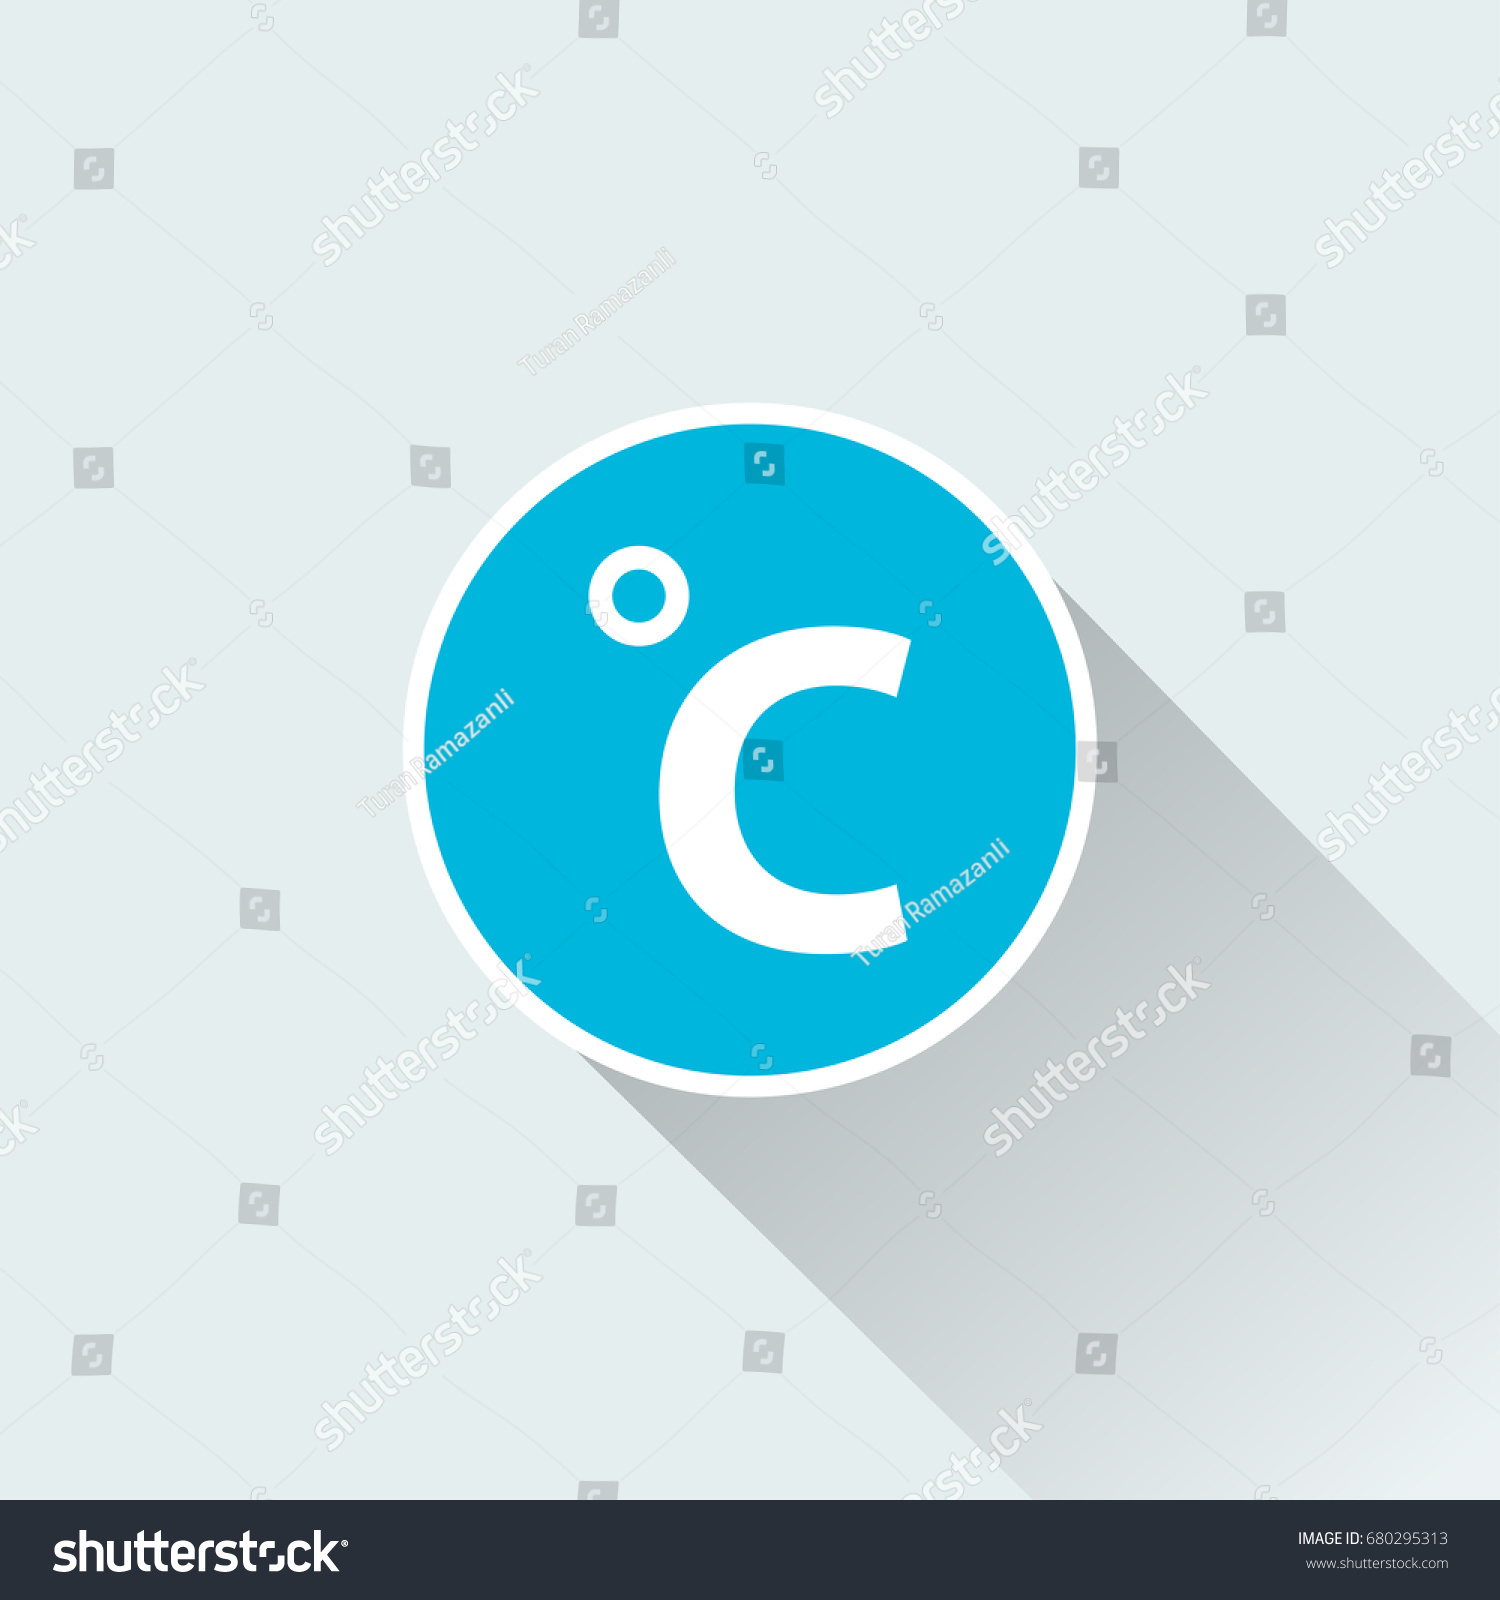 What is the symbol for degrees celsius images symbol and sign ideas celsius degrees symbol stock vector 680295313 shutterstock celsius degrees symbol buycottarizona images biocorpaavc Choice Image